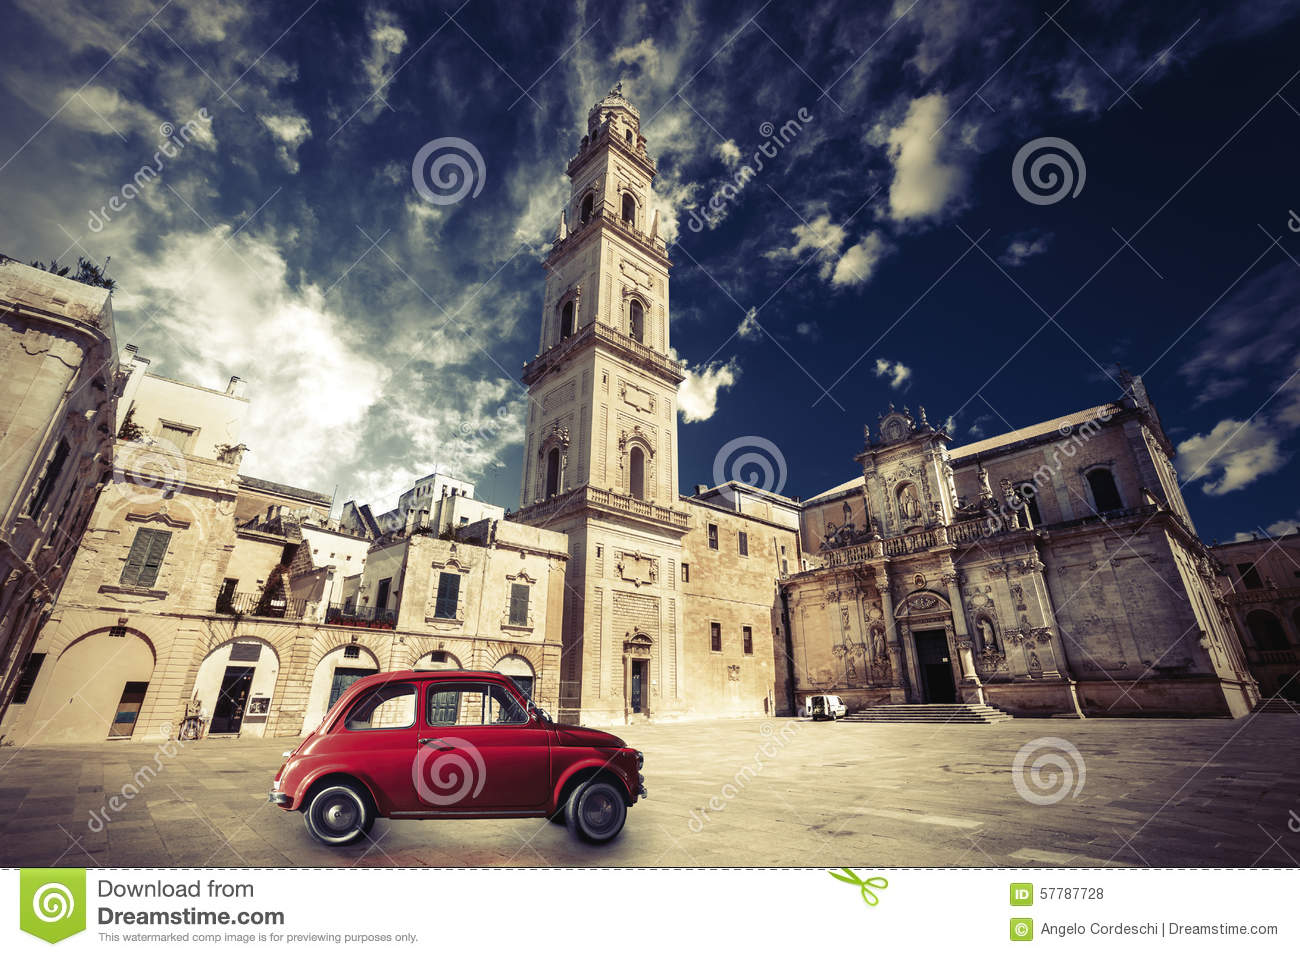 Vintage Italian scene, an old church with a bell tower and old small red car